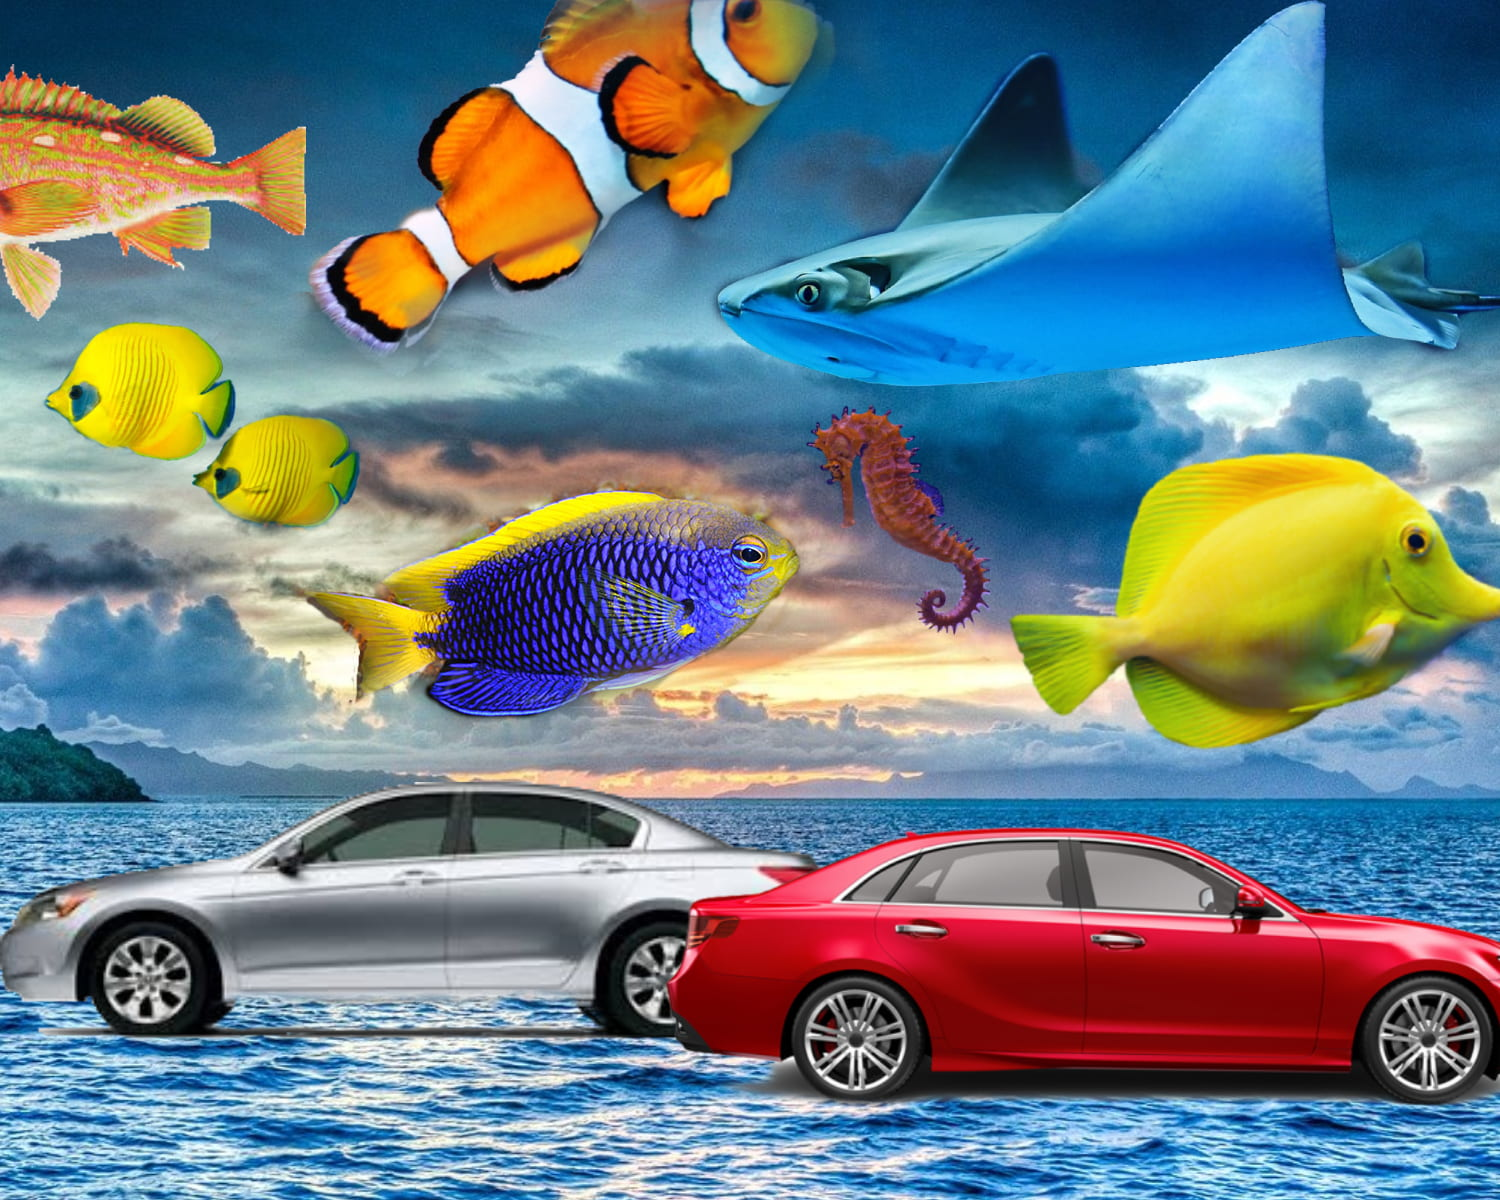 Car on ocean and fish flying